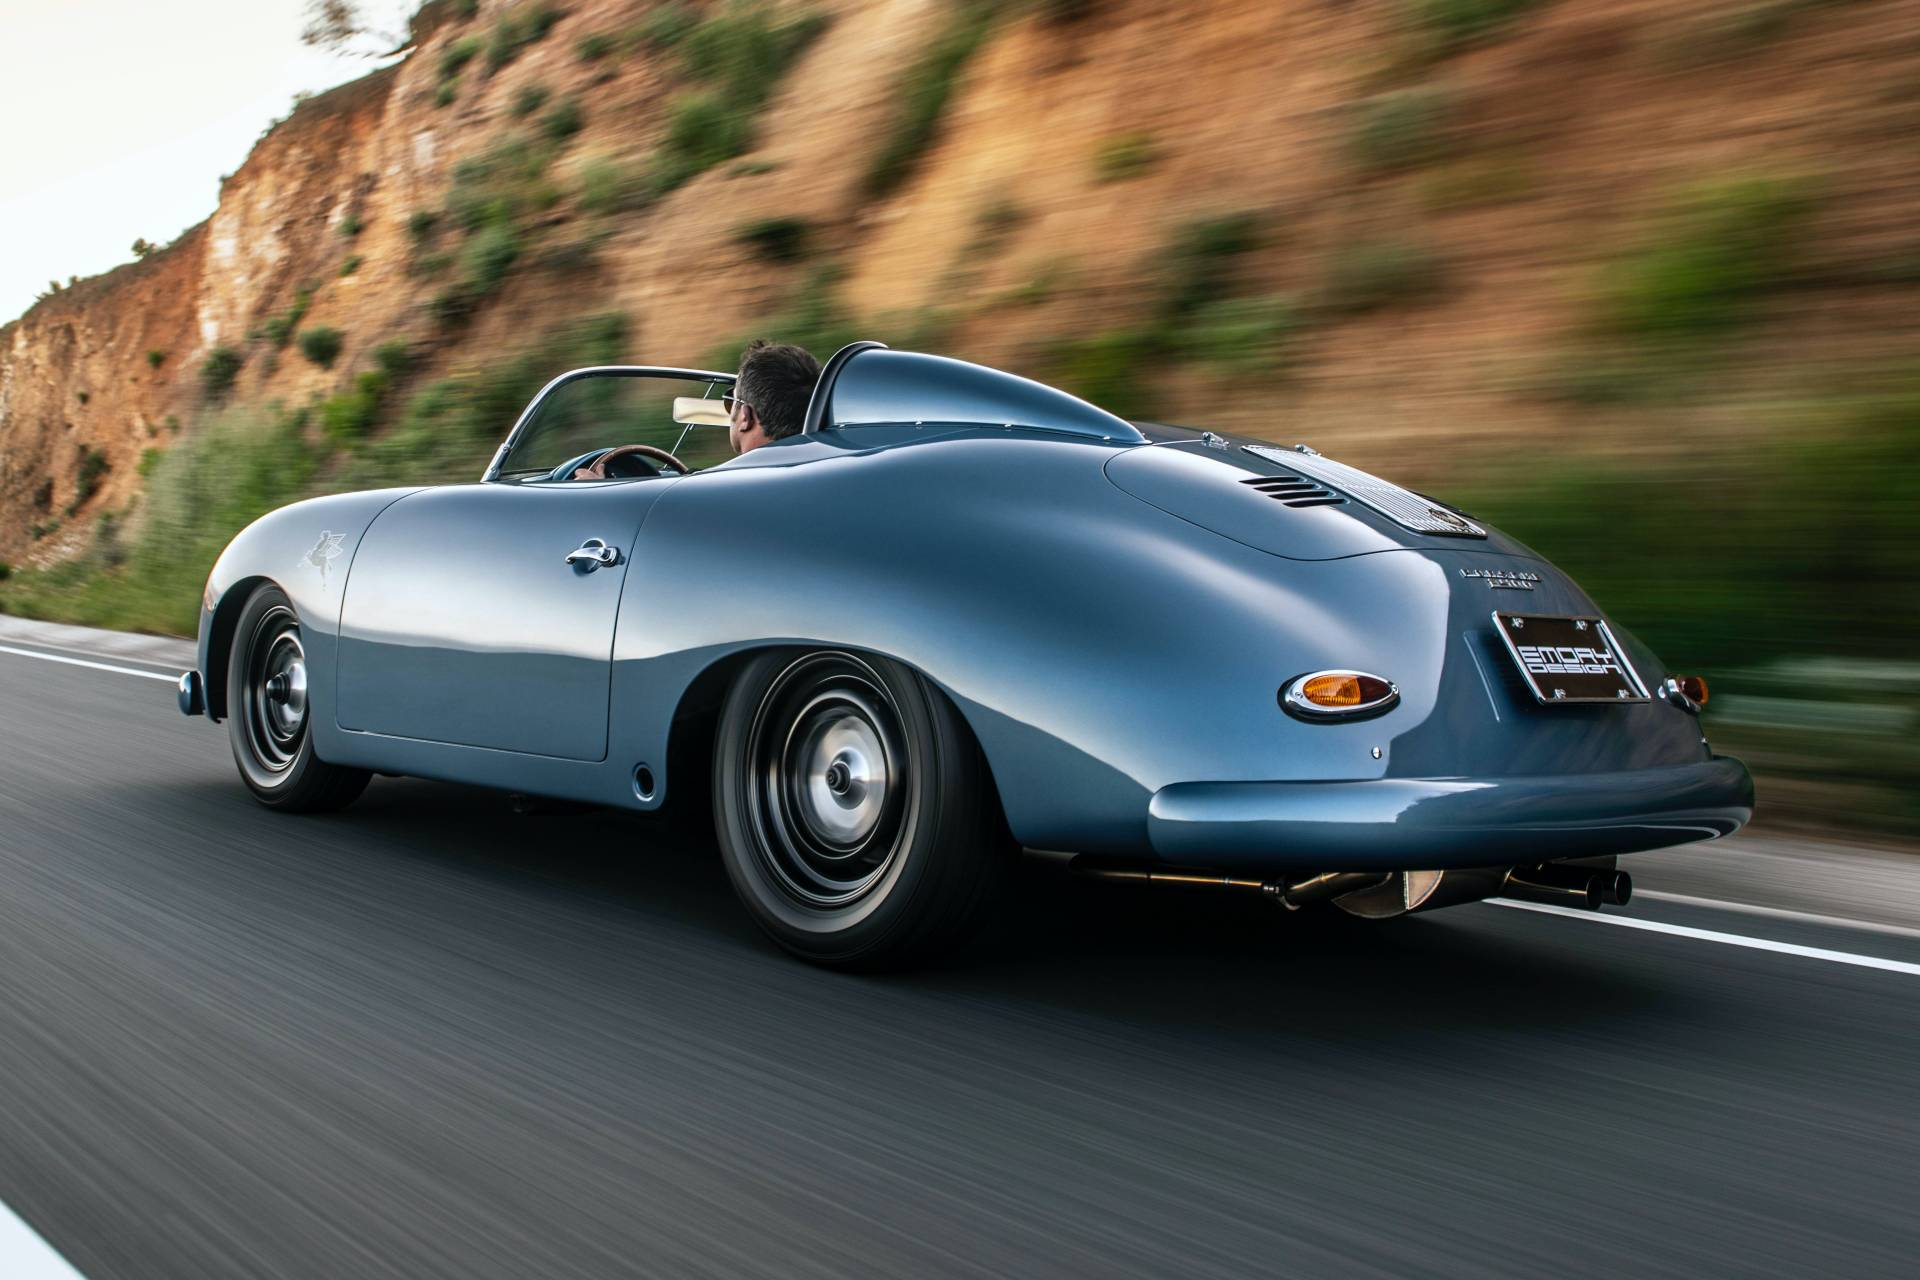 Porsche-356-Speedster-1959-Aquamarine-Transitional-By-Emory-Motorsport-2